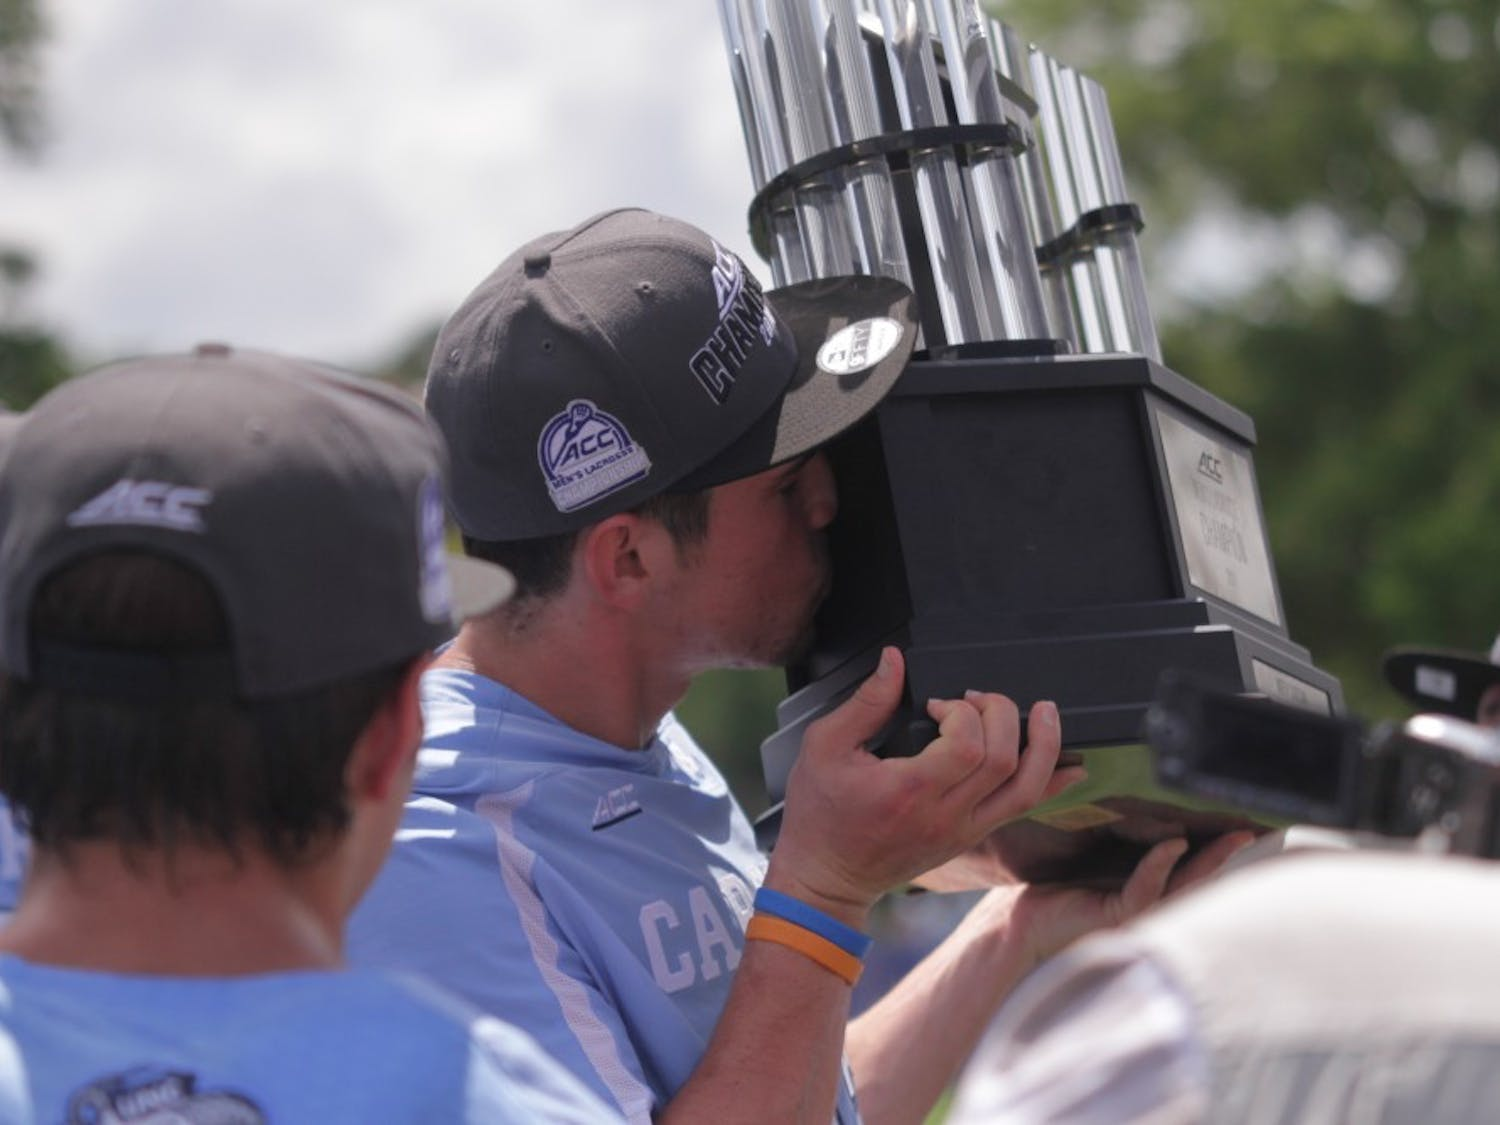 With a 14-10 win over Notre Dame on Sunday afternoon to win the ACC Championship, UNC collected the program's ninth conference championship. It was one of three conference championships UNC won on Sunday.